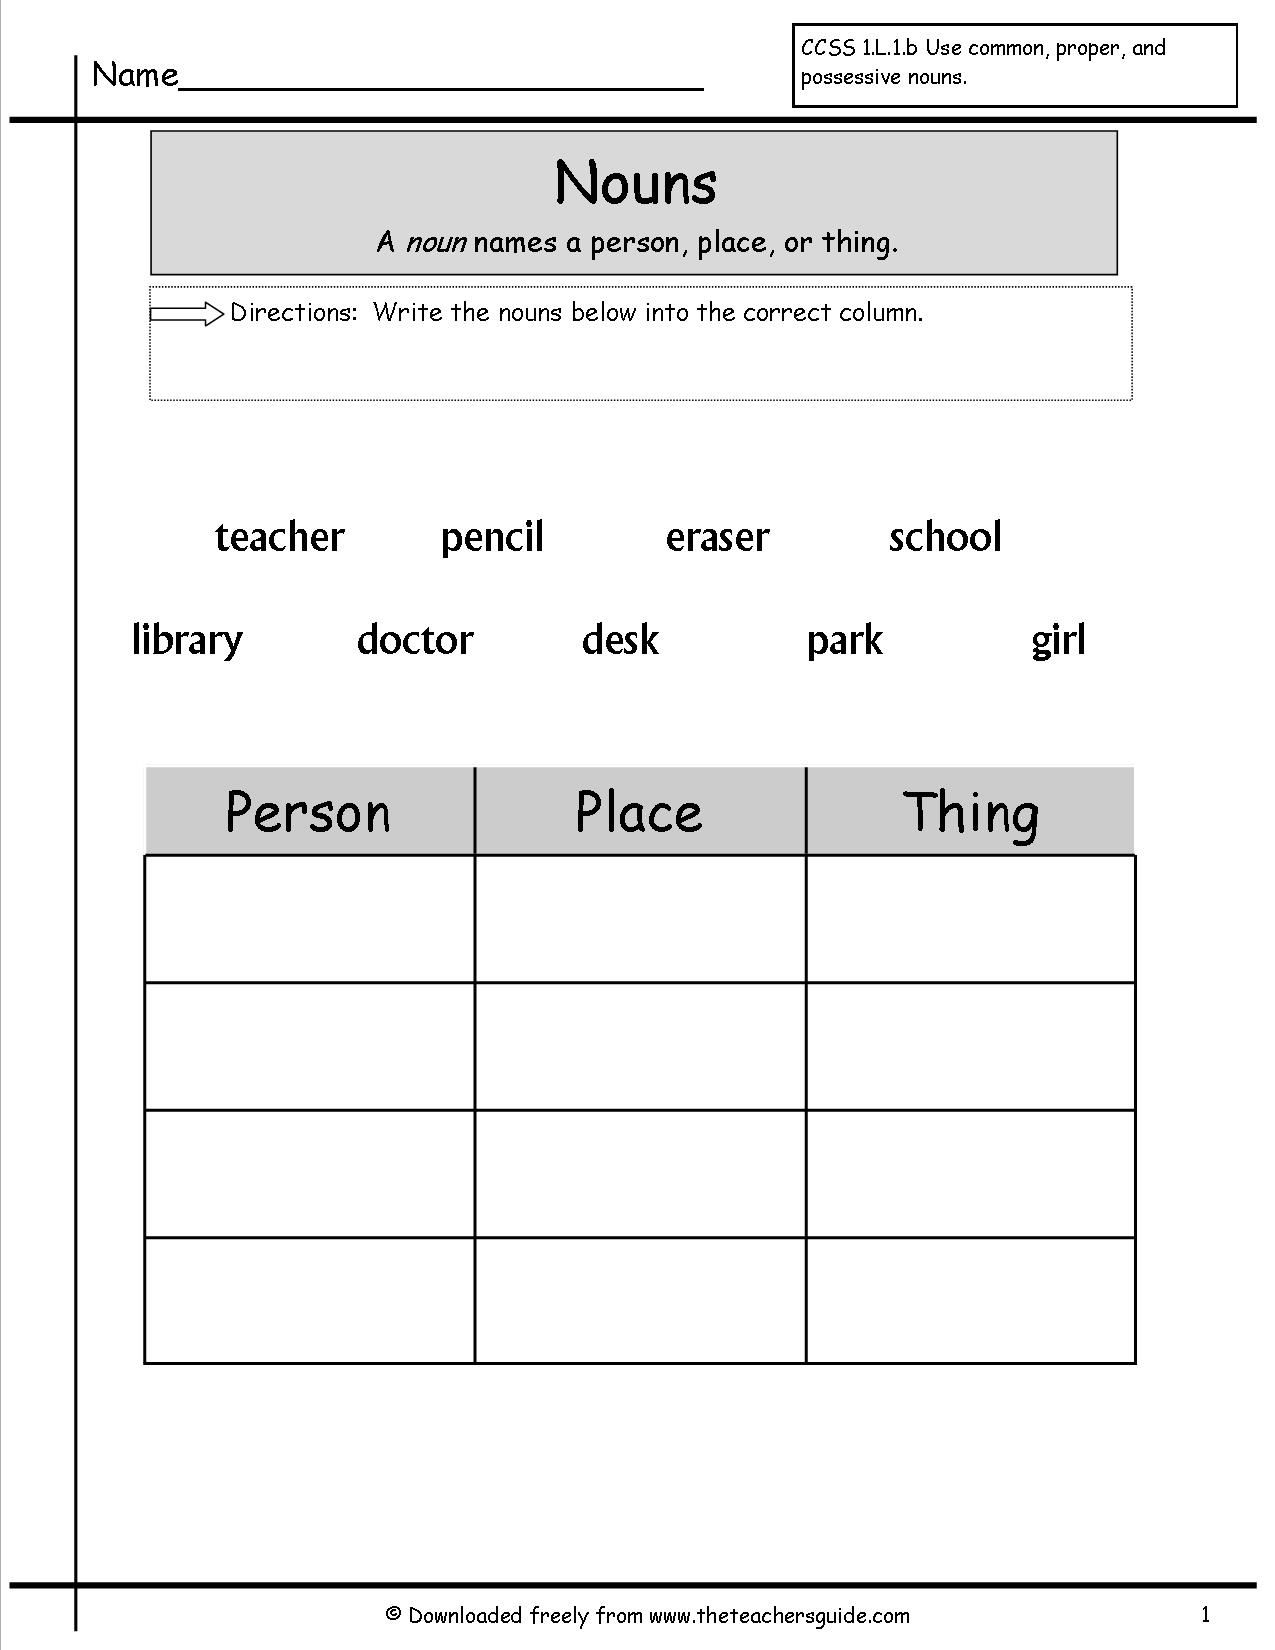 Grammer Printables Nouns Worksheets Nouns Worksheets Identifying